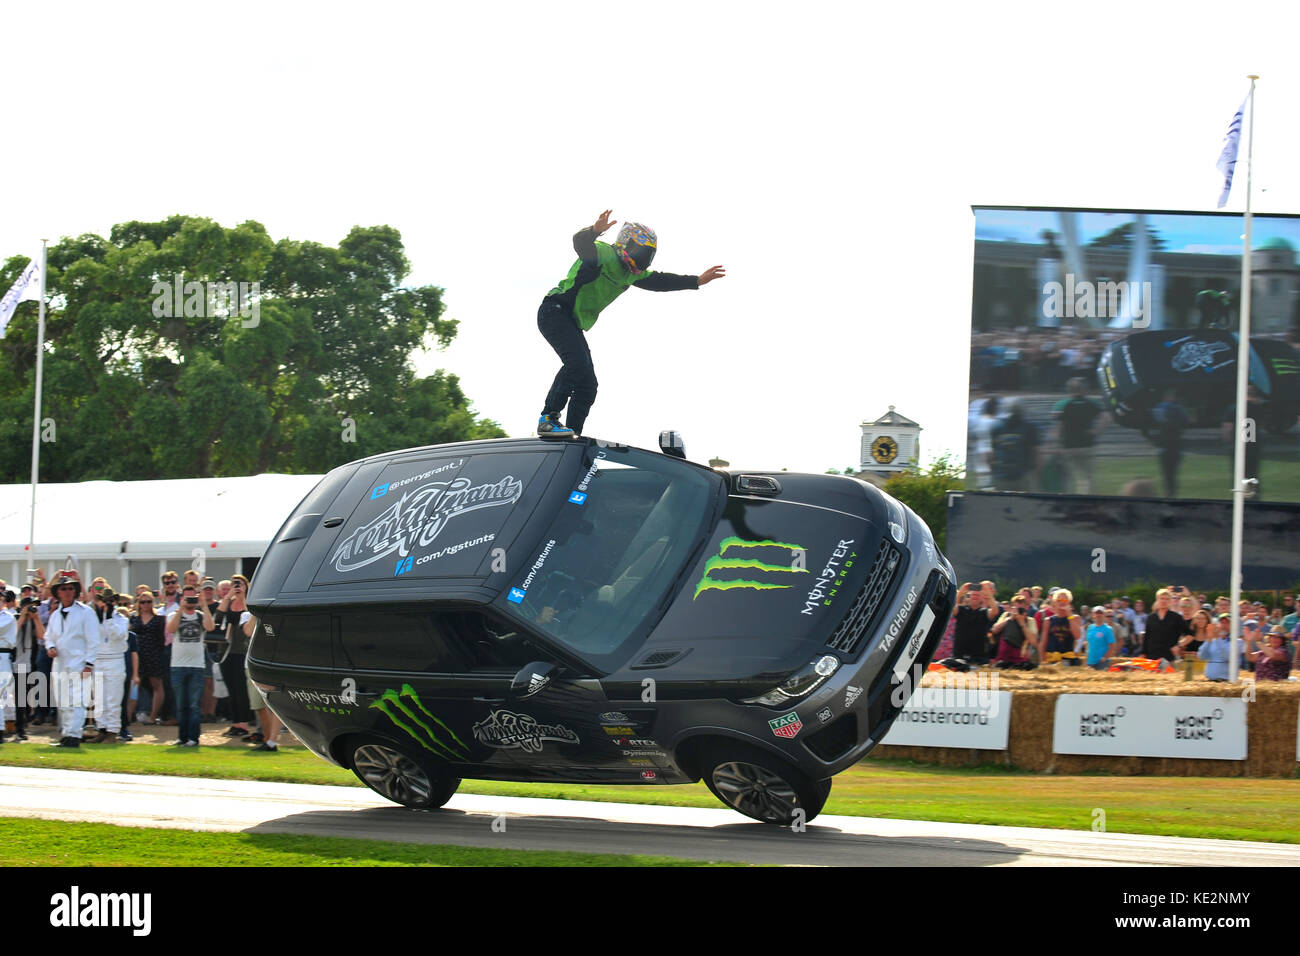 A stunt driver stands on top of a moving car at the 2017 Goodwood Festival of Speed. Stock Photo